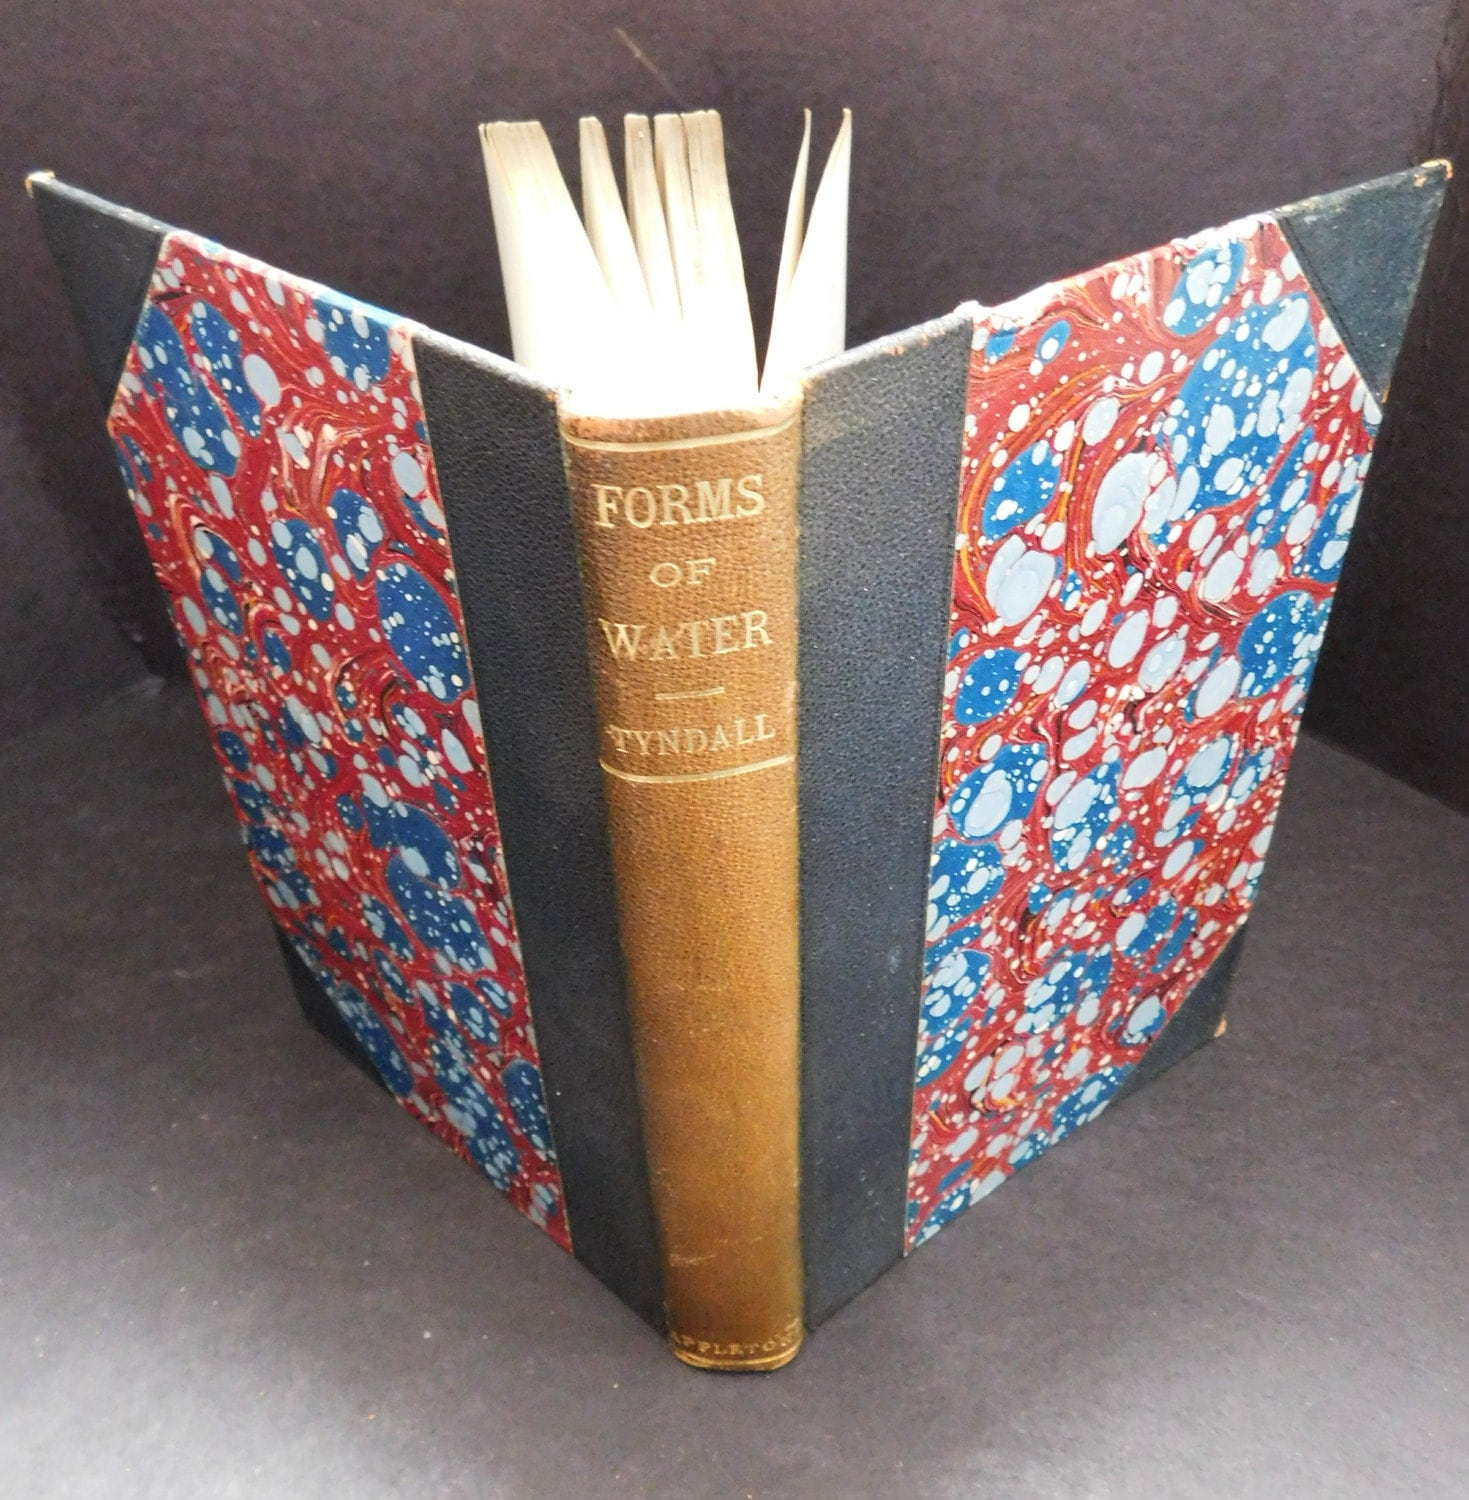 Vintage wooden music stand book stand by vintagearcheology on etsy -  Zoom